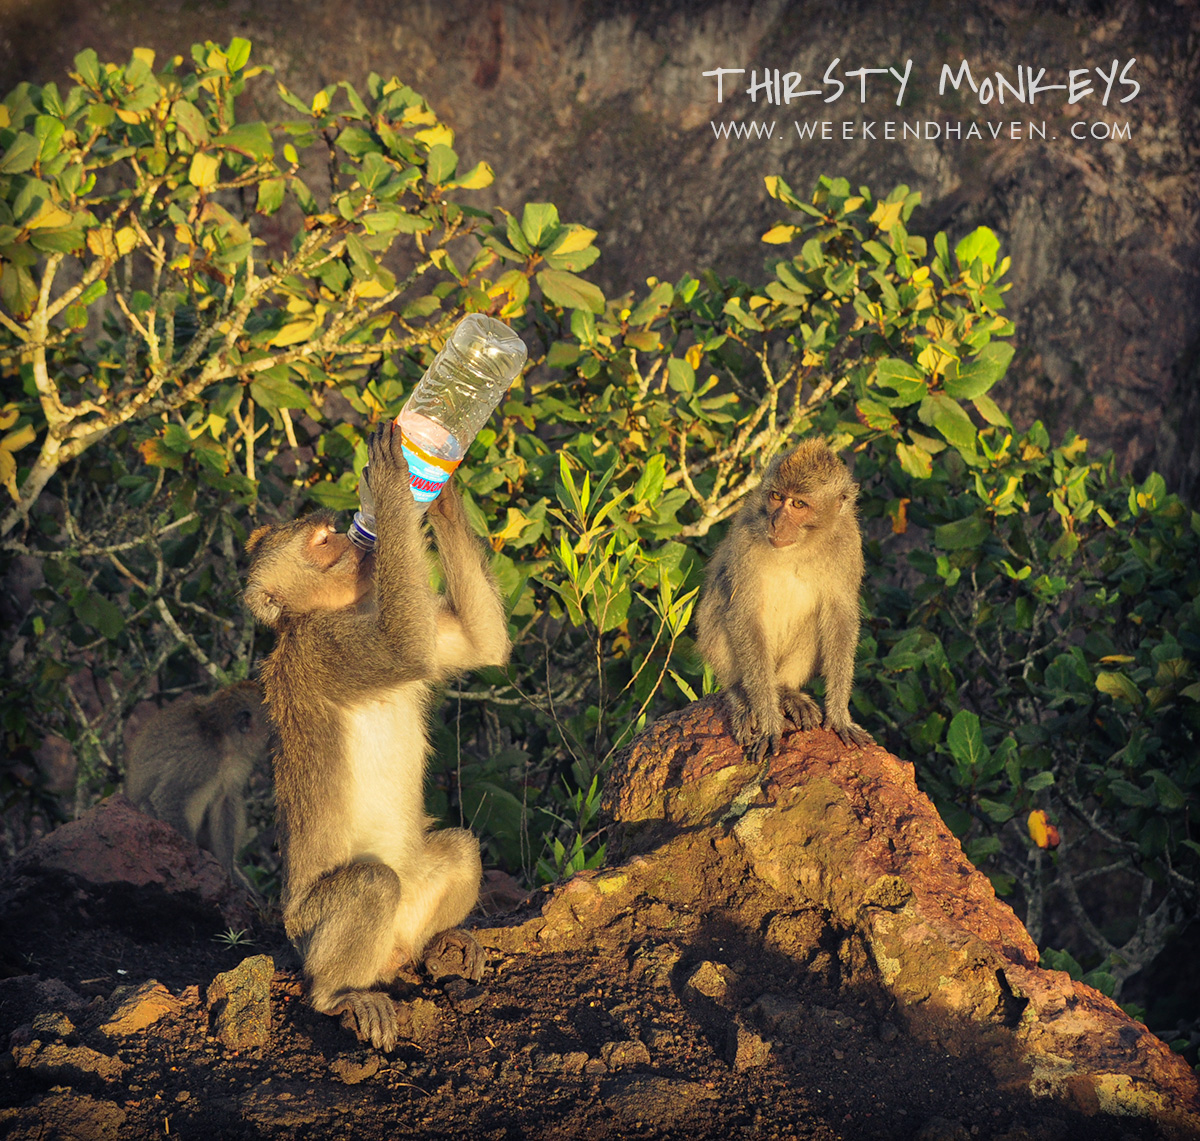 Thirsty Monkeys at Mount Batur